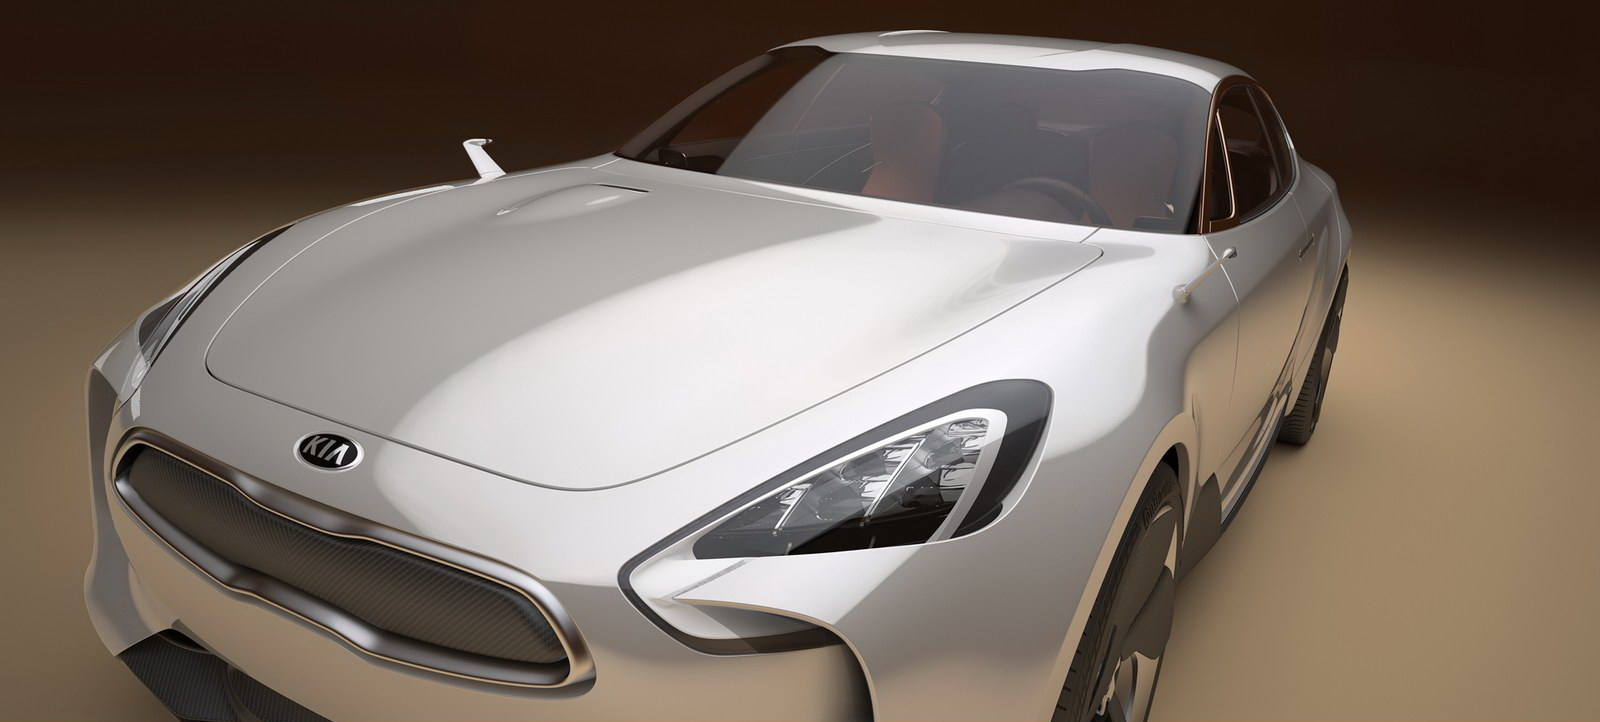 Kia Previews 4Door RWD Coupe Concept for Frankfurt